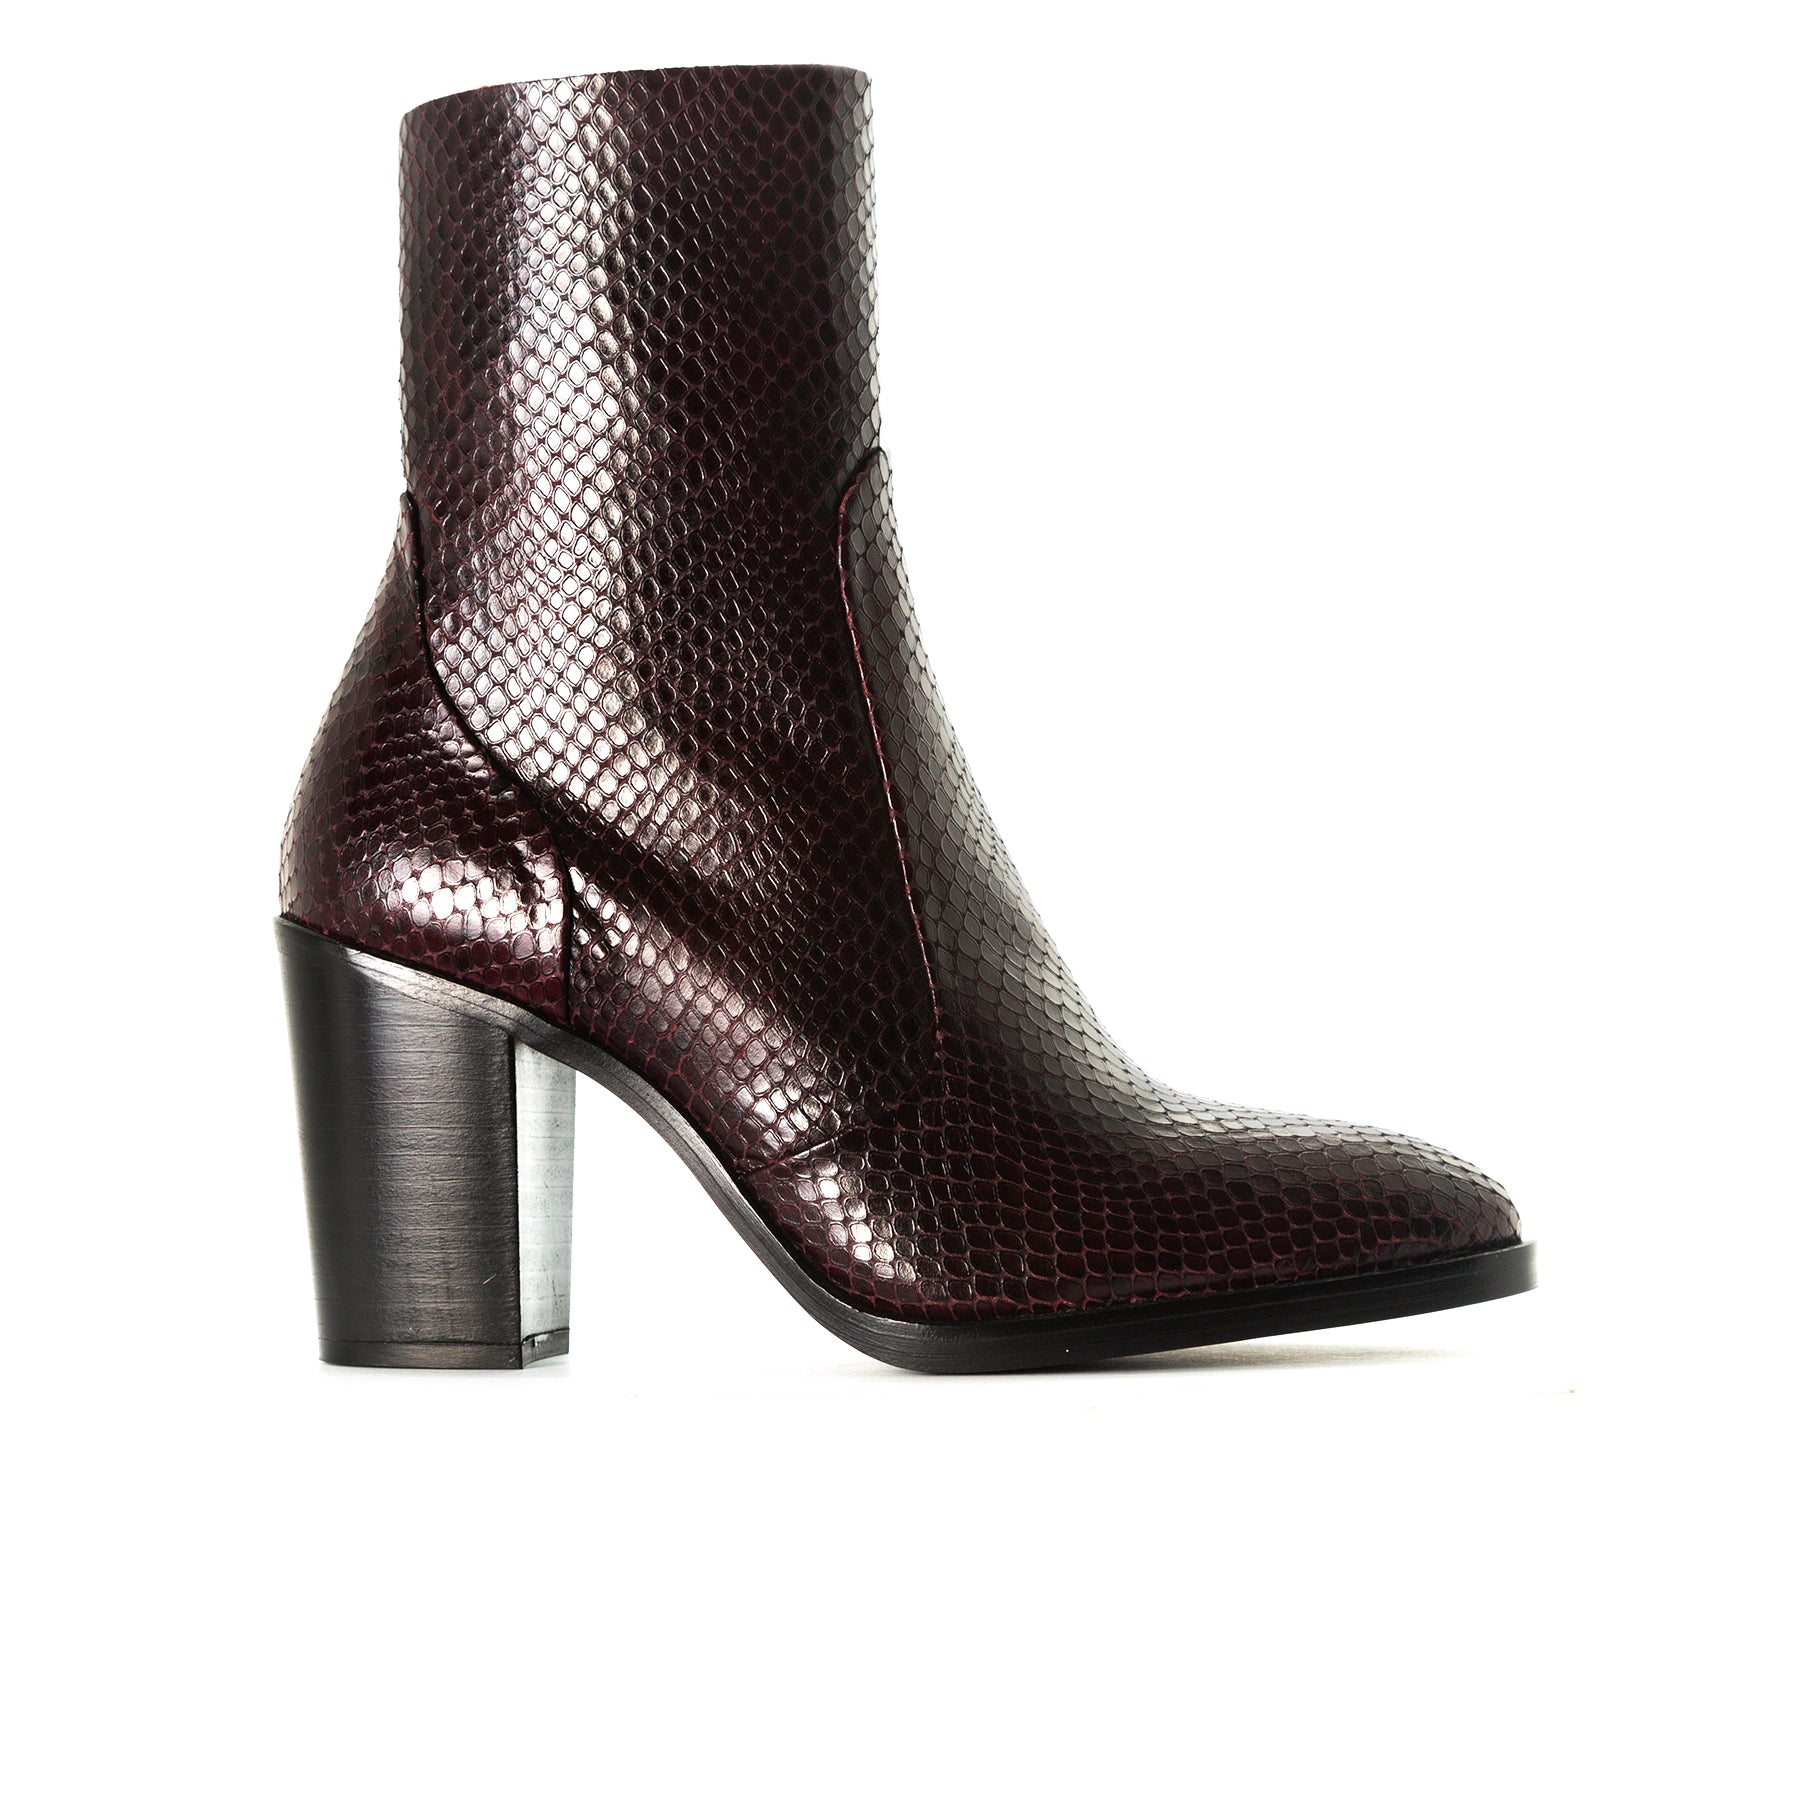 Cadiz Bordo Snake Booties